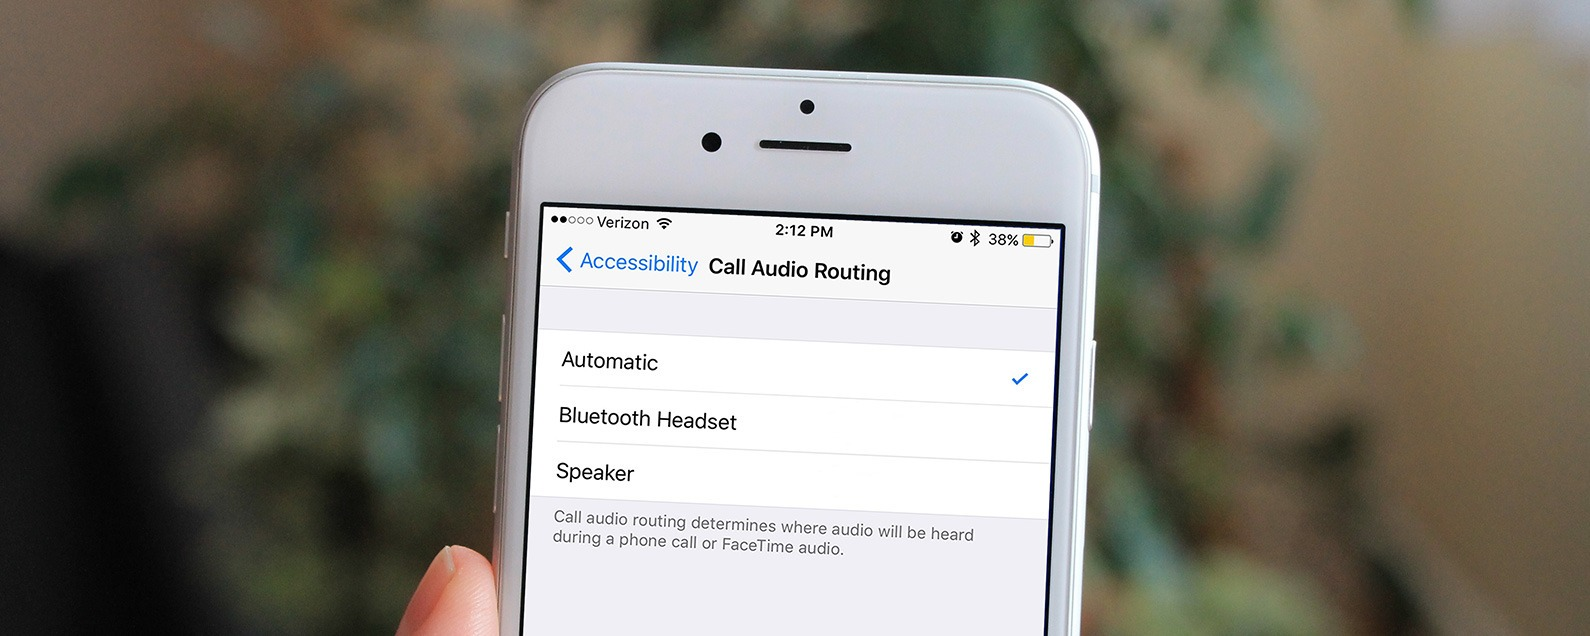 How to Set Your Speaker or Headphones as the Default Audio